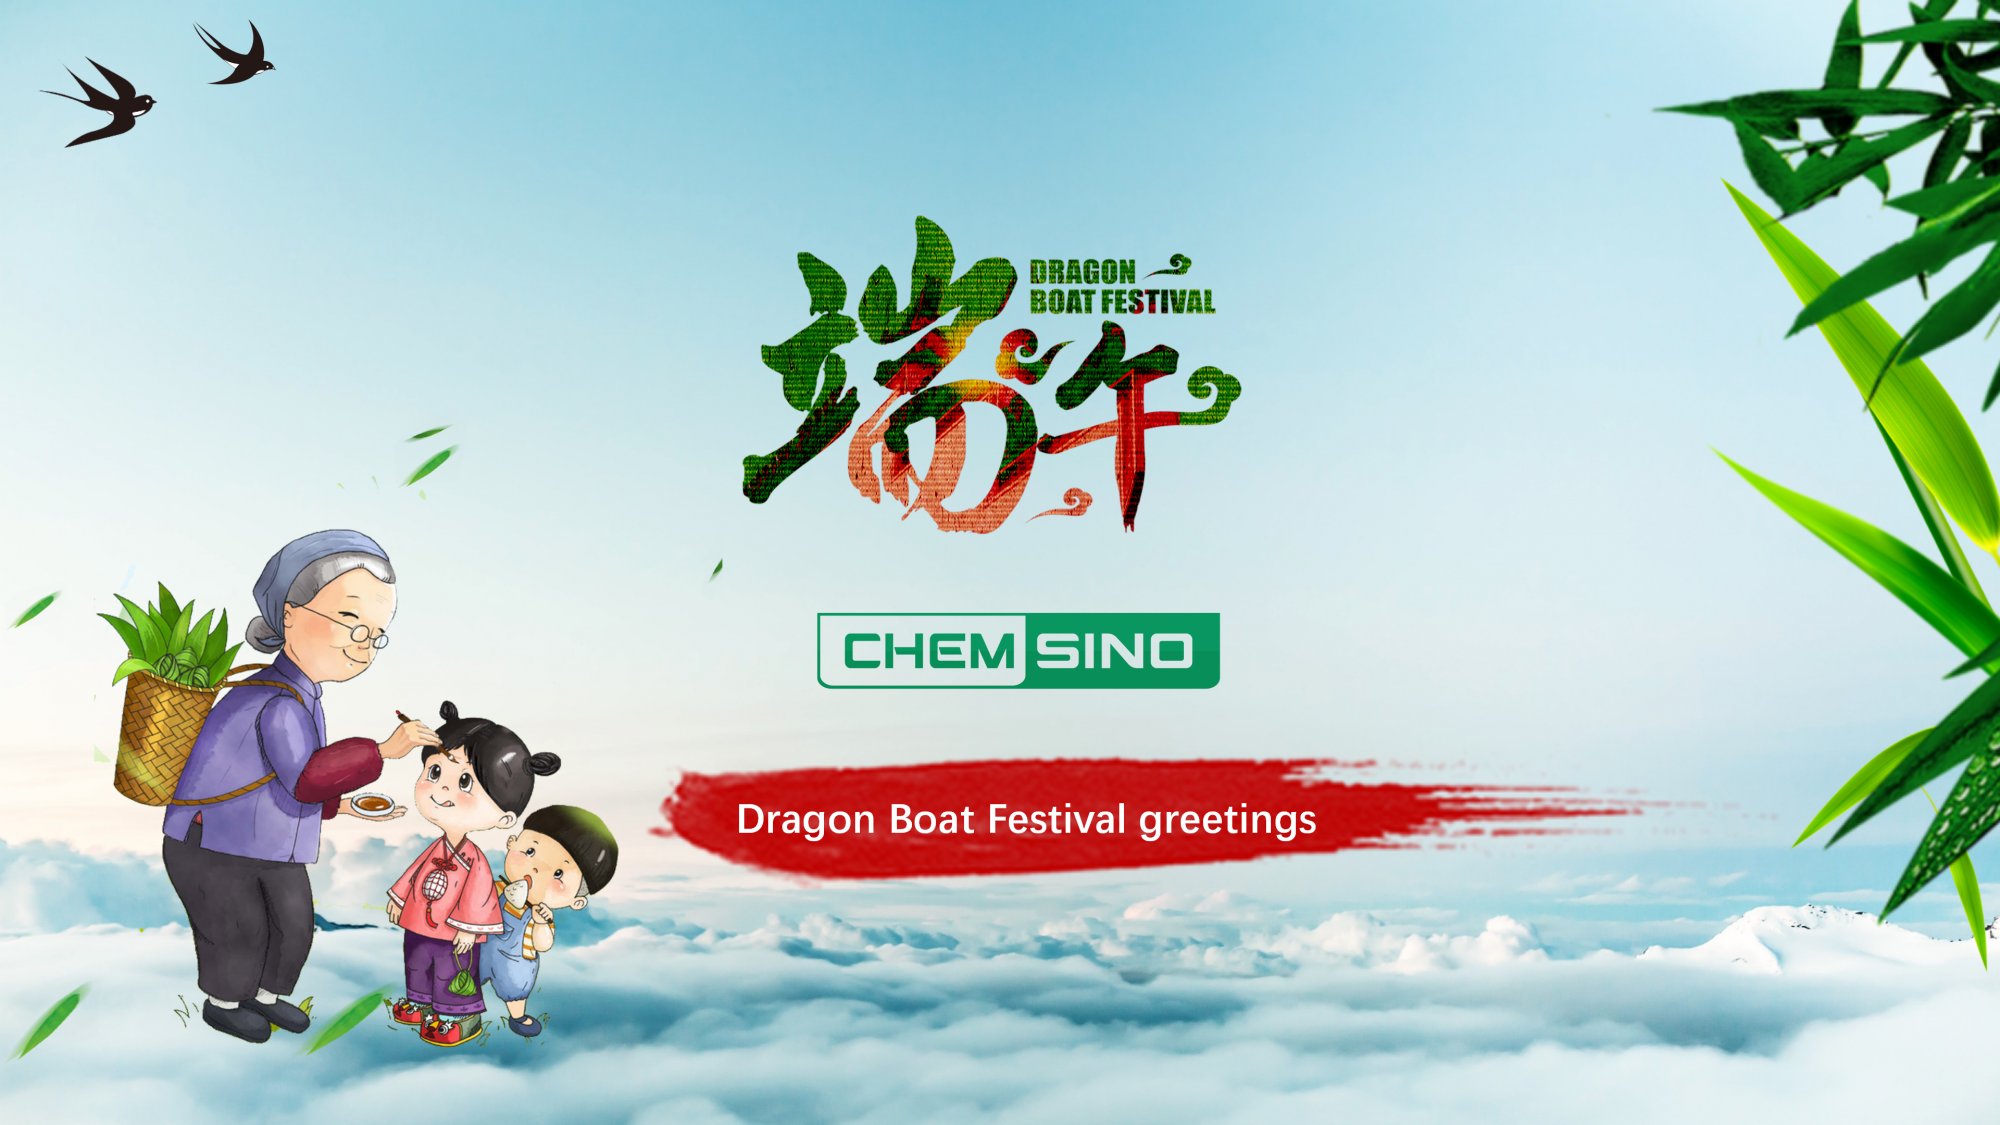 Dragon Boat Festival Greetings from Chemsino